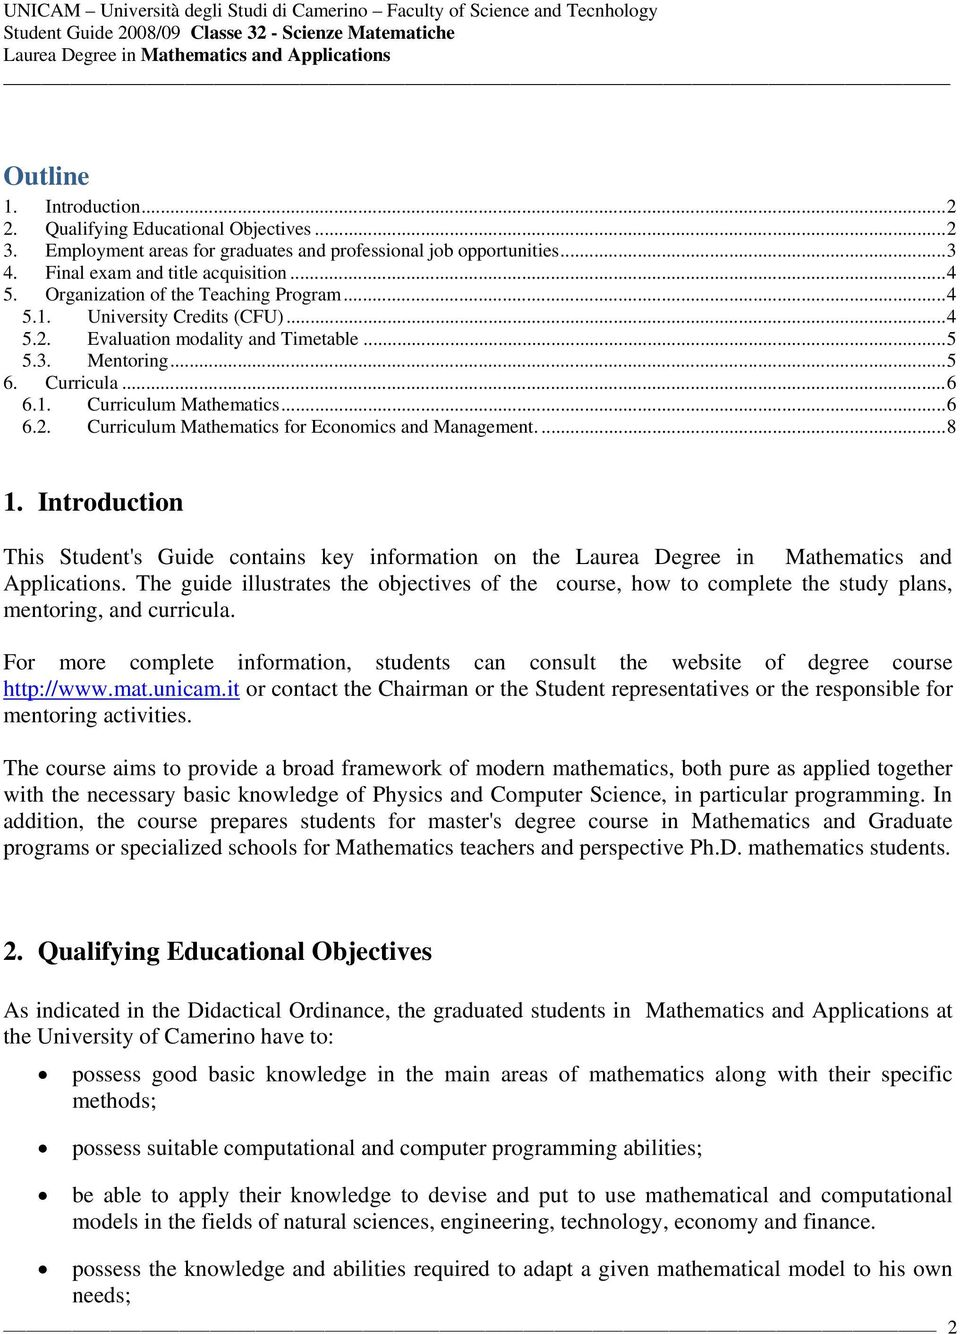 Introduction This Student's Guide contains key information on the Laurea Degree in Mathematics and Applications The guide illustrates the objectives of the course, how to complete the study plans,